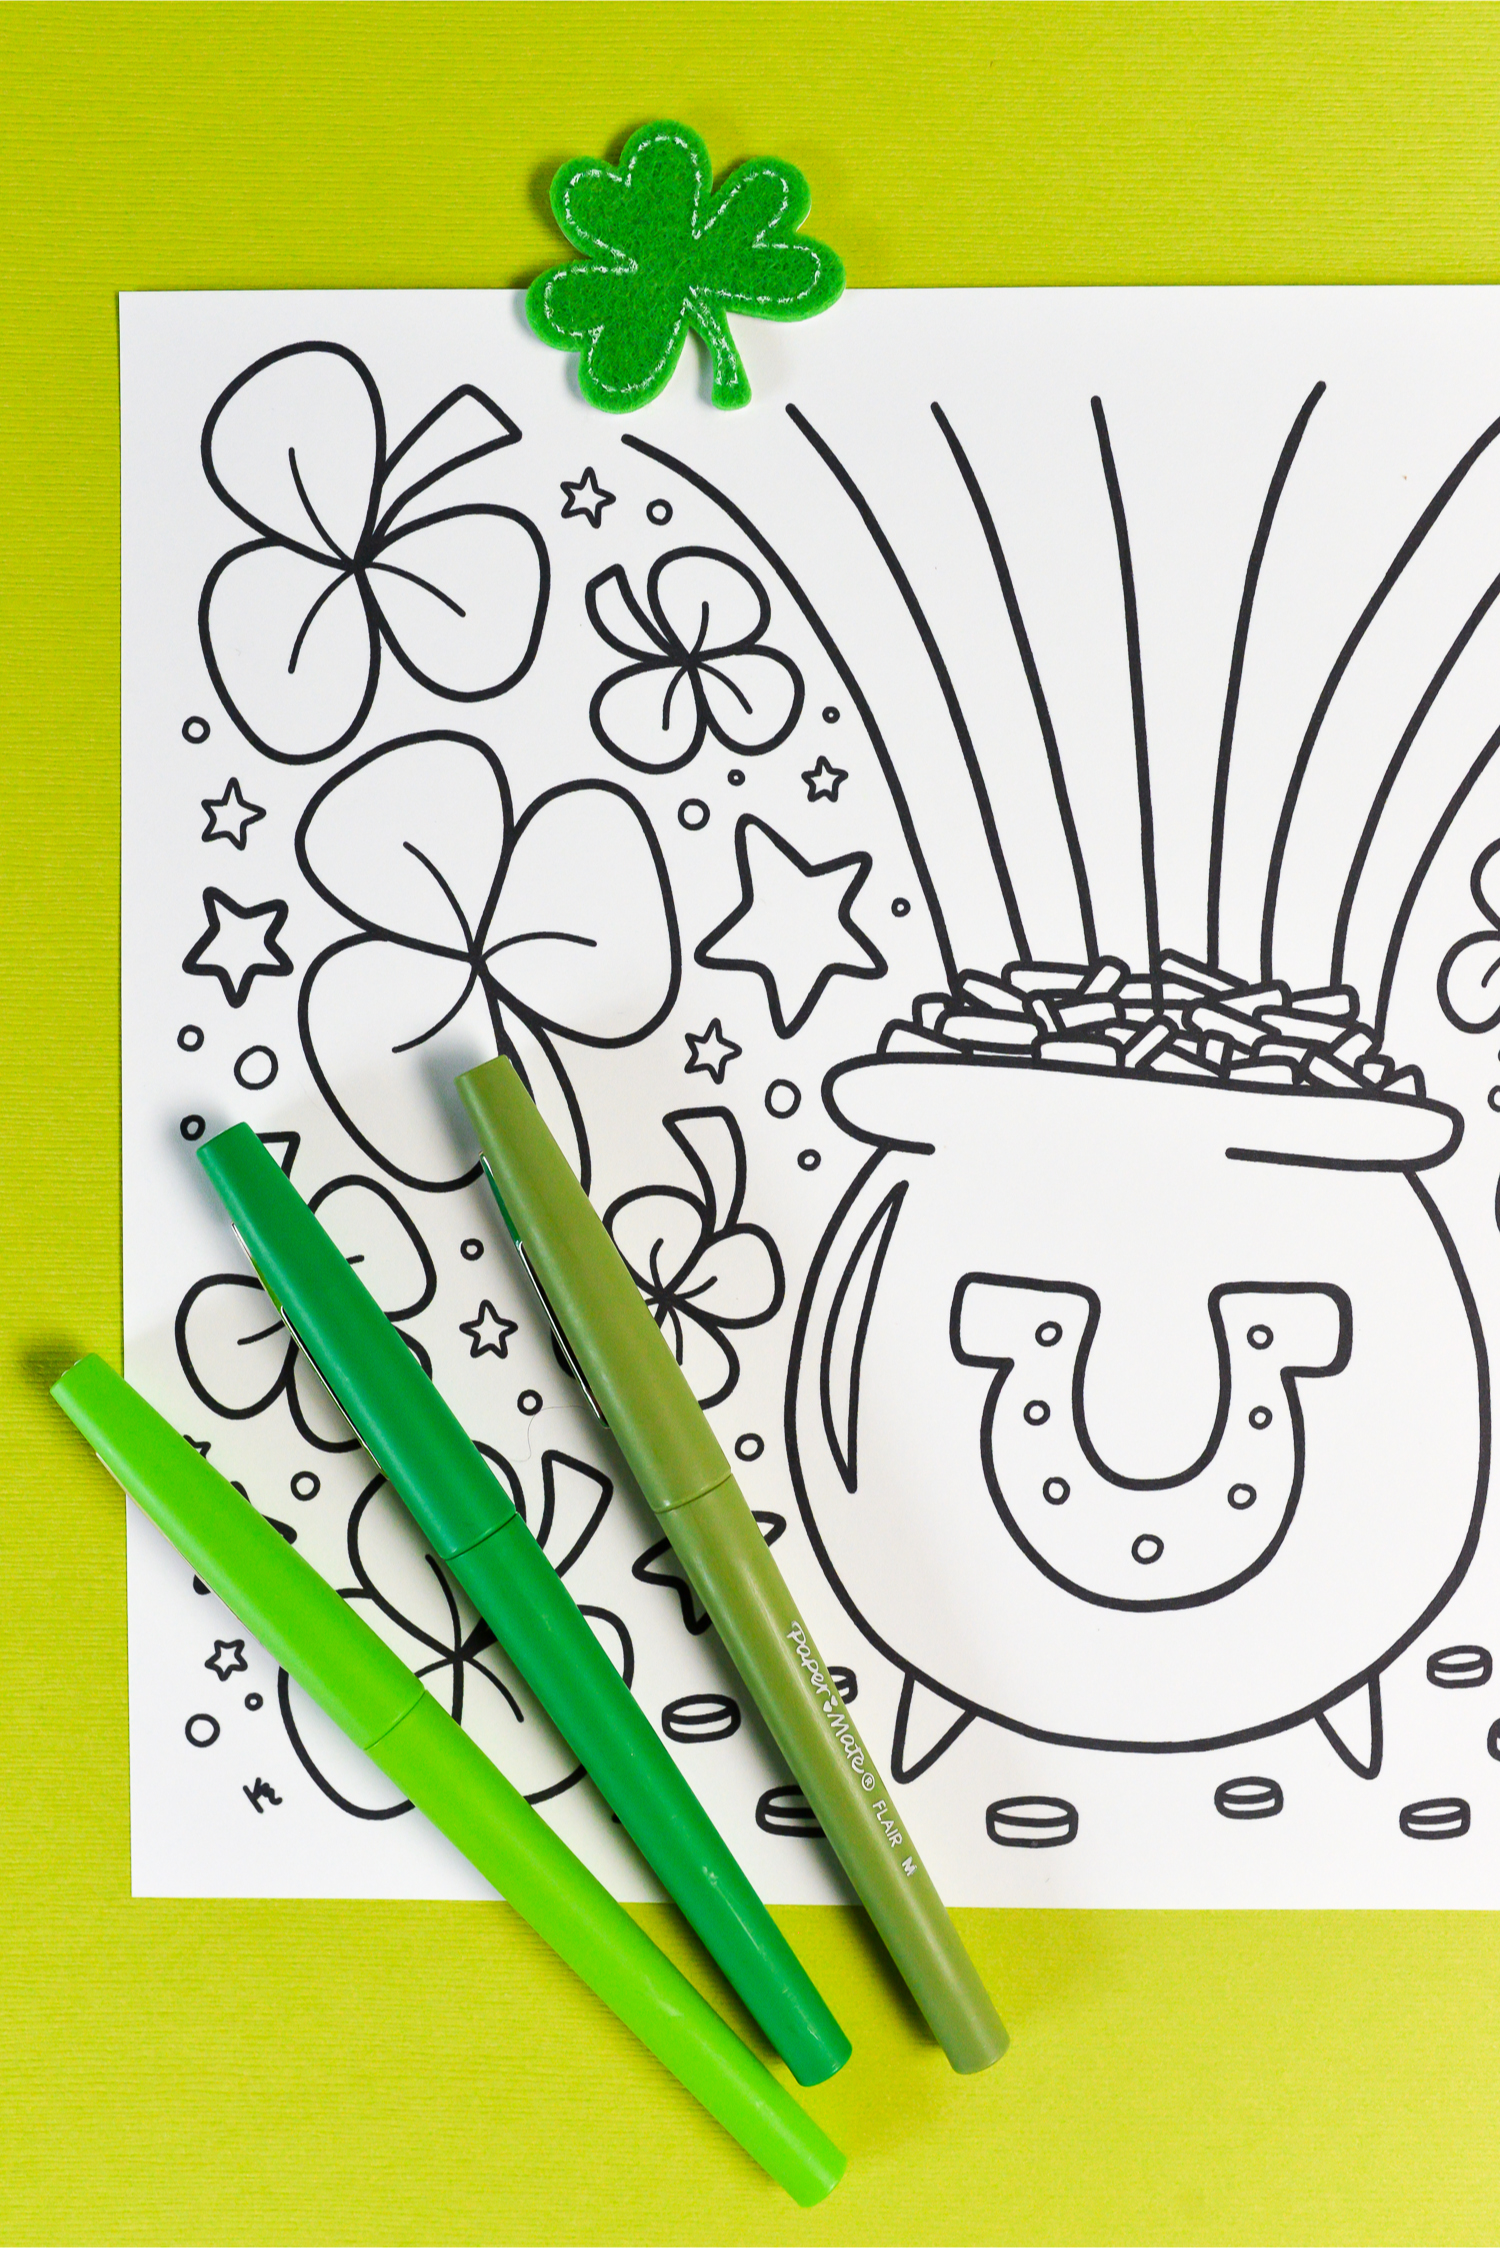 photograph regarding St Patrick's Printable Coloring Pages named Absolutely free Printable St. Patricks Working day Coloring Site - Hey, Permits